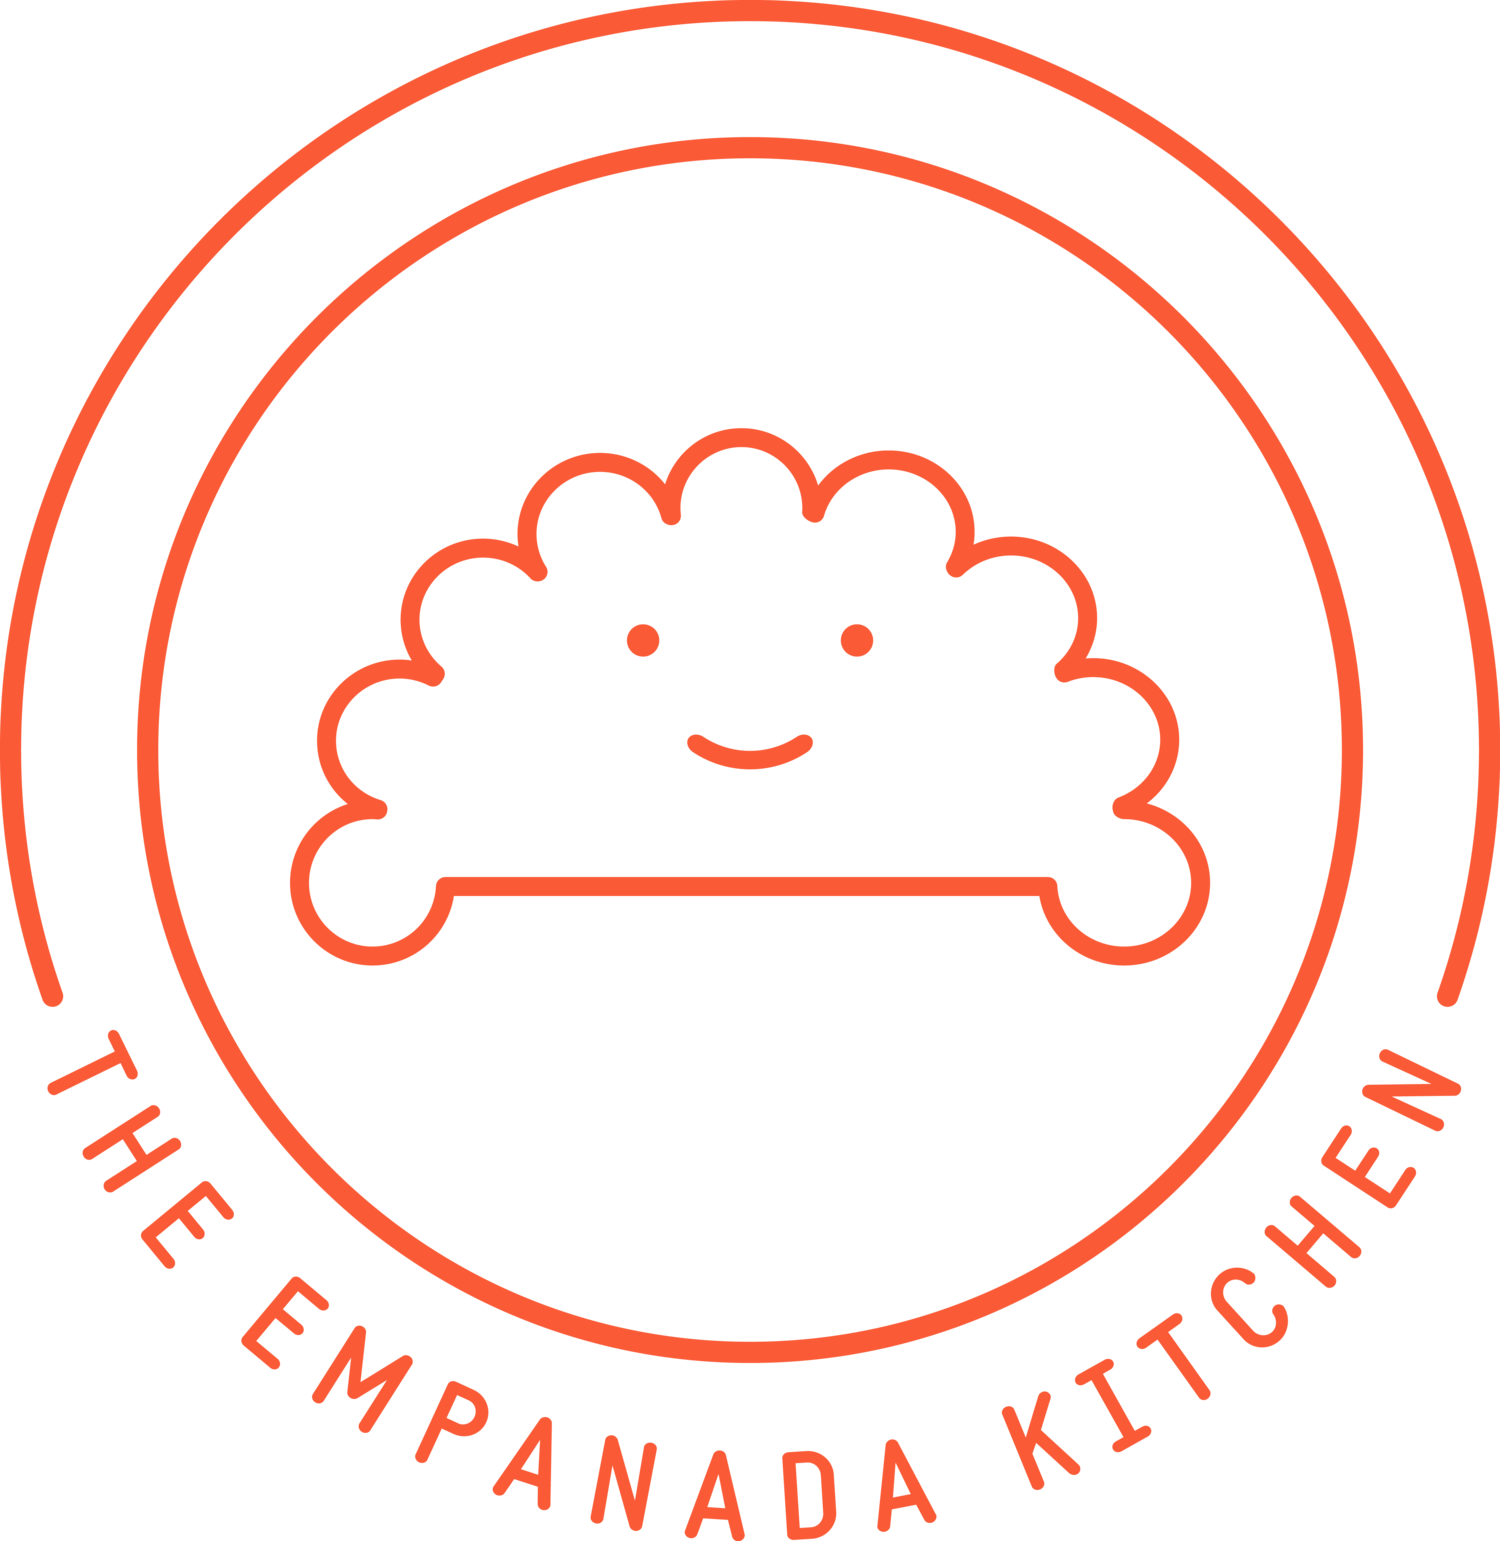 The Empanada Kitchen